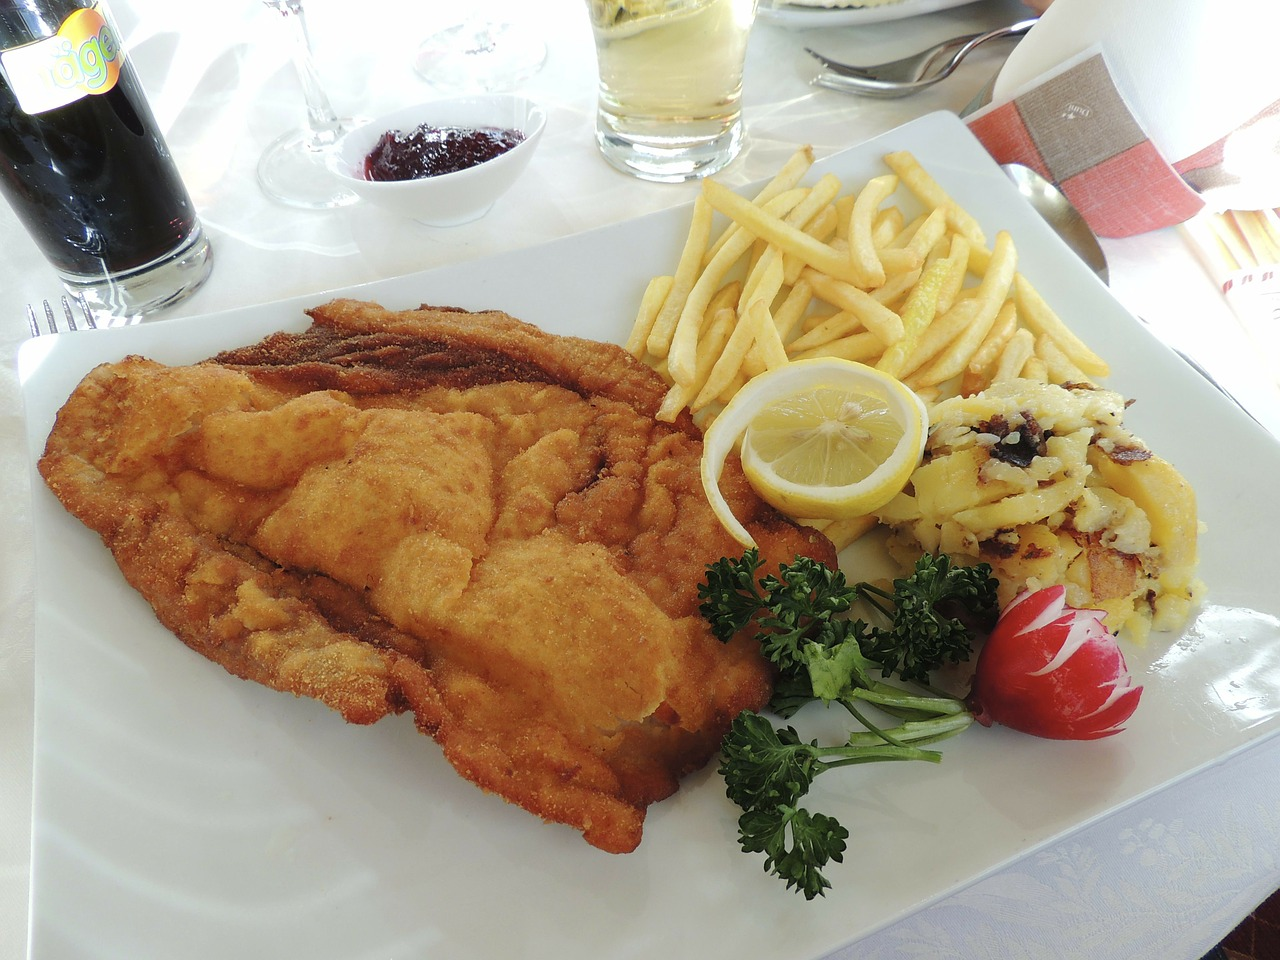 schnitzel ketchup french free picture